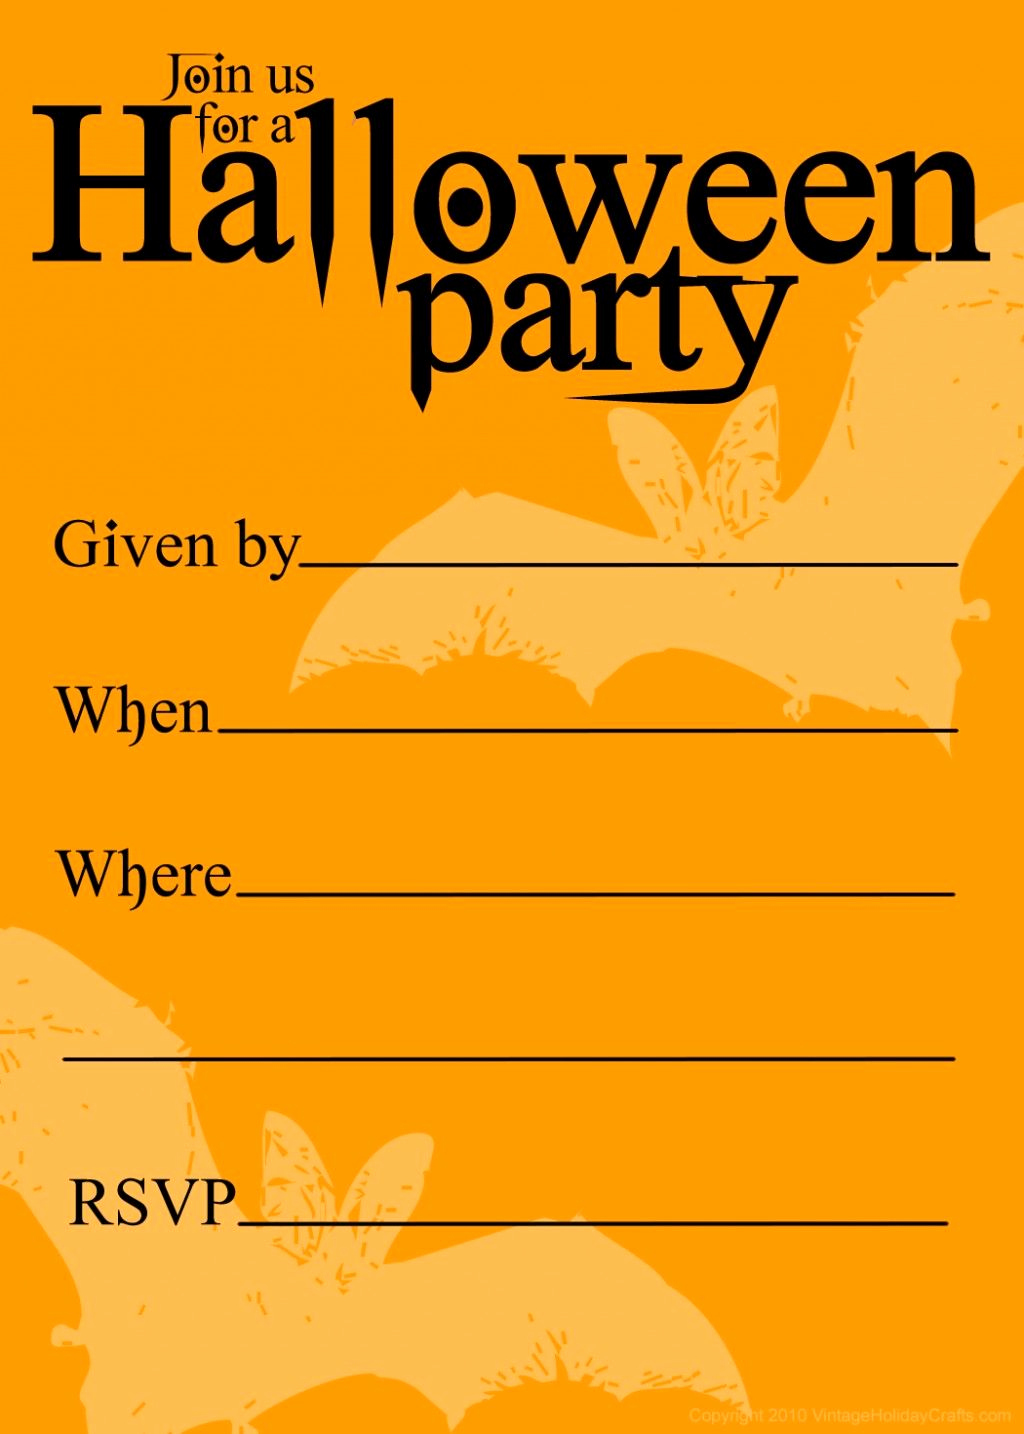 Free Halloween Invitation Templates Elegant Free Printable Halloween Birthday Invitations Templates